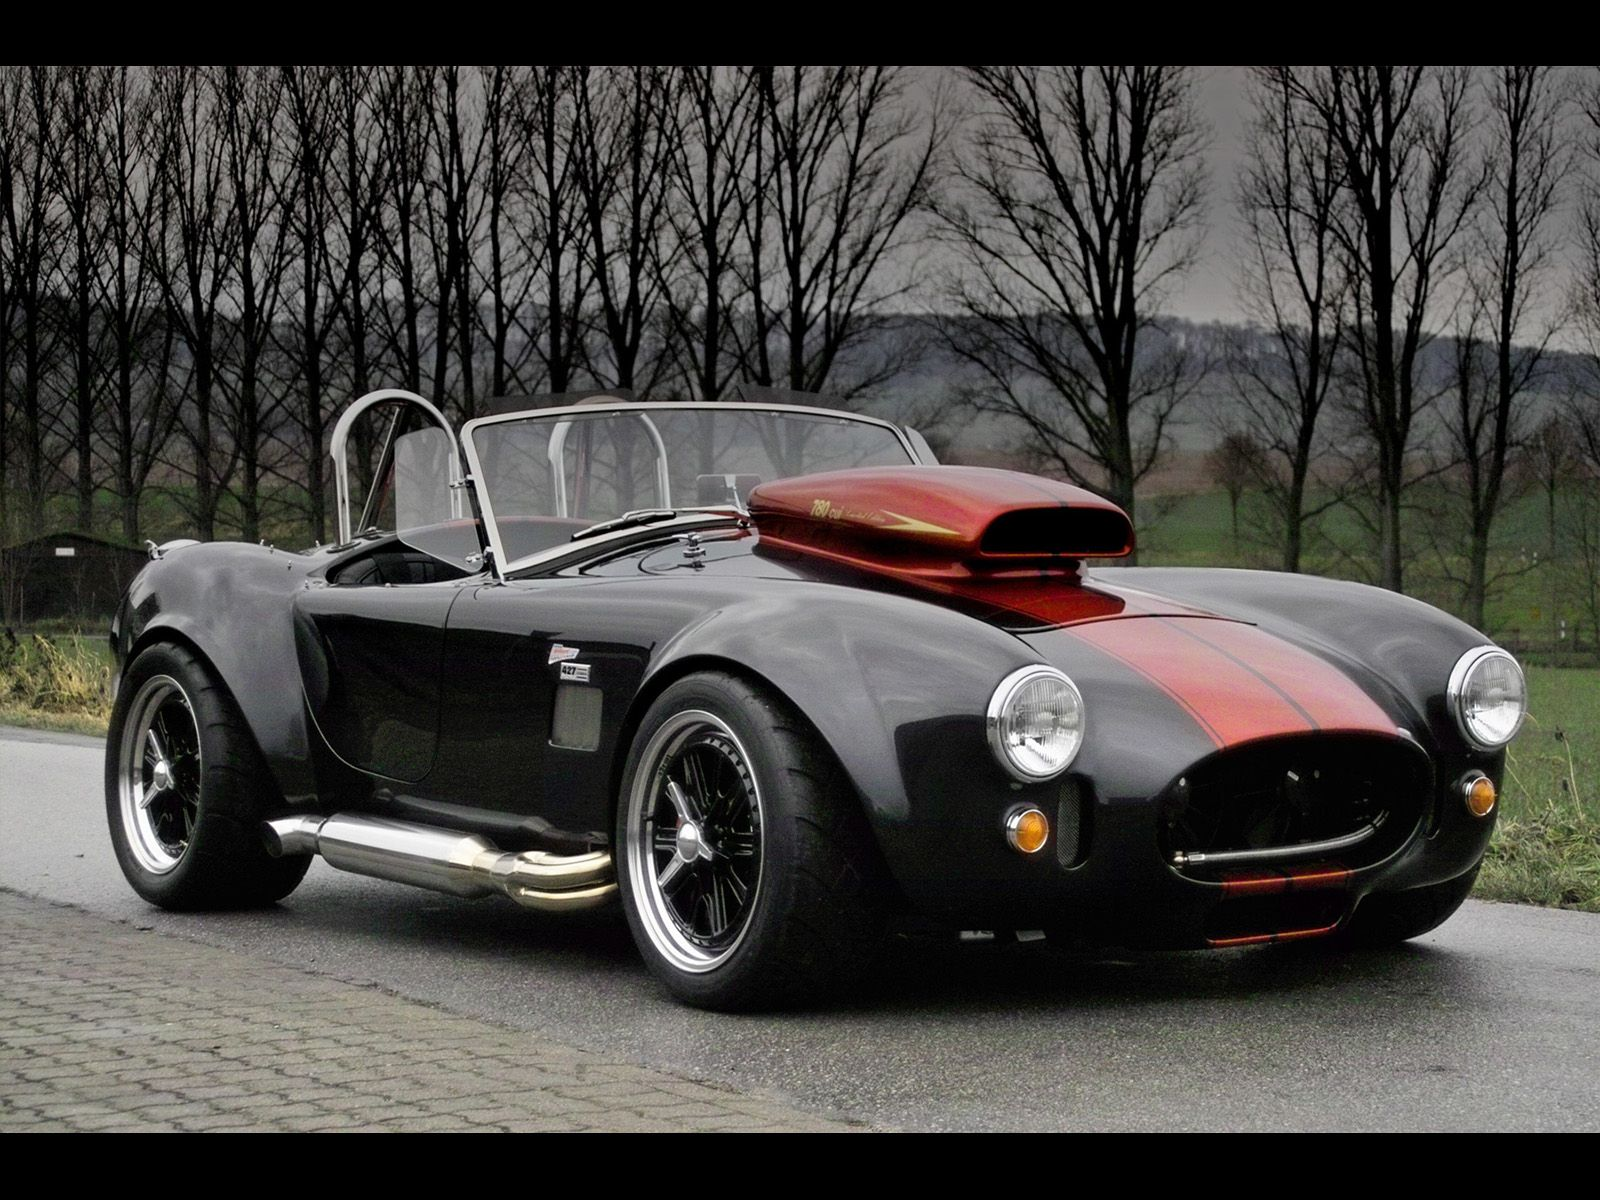 1967 shelby cobra 427 super snake only two of these were ever made one